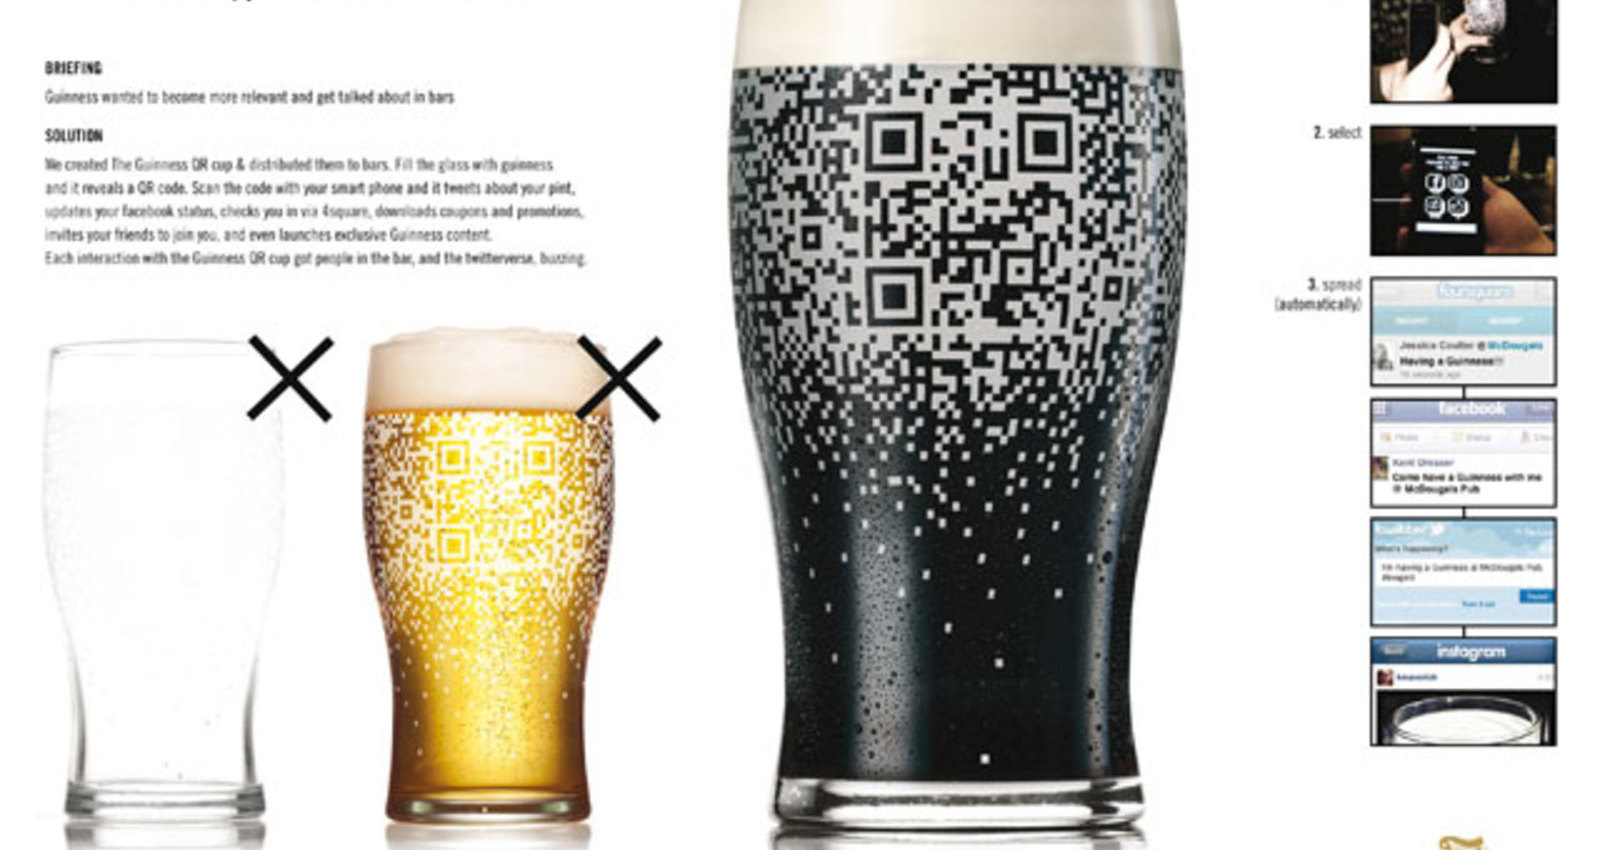 The Guinness QR Cup